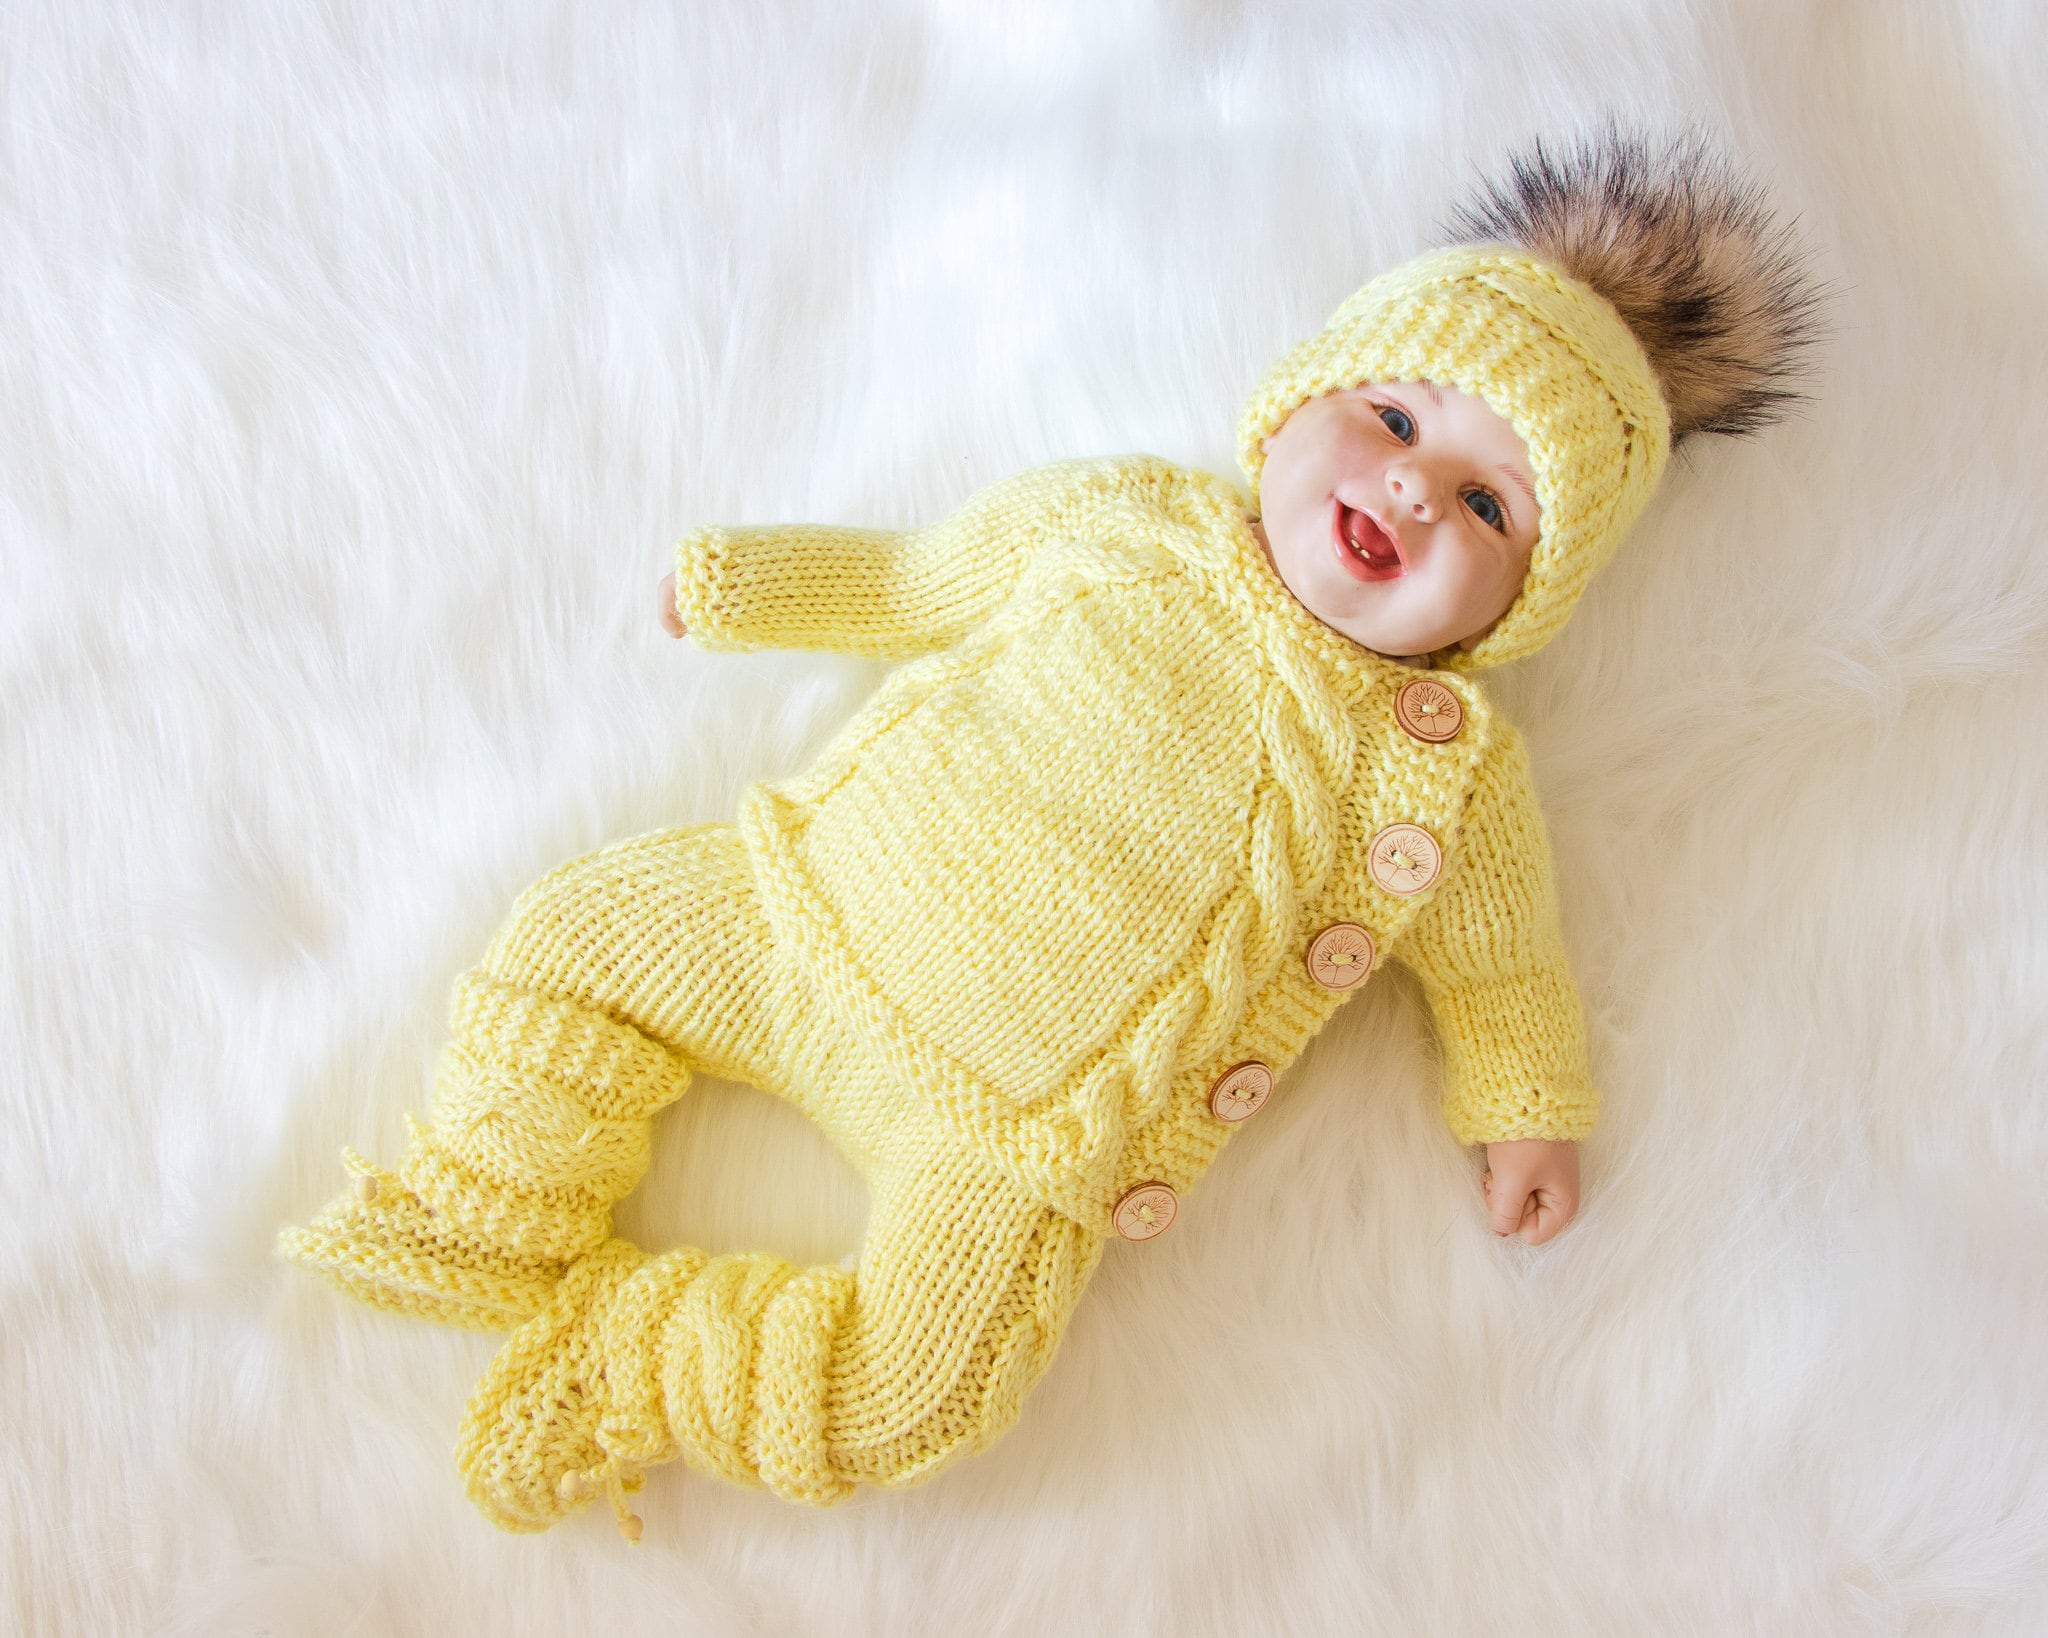 Hand knitted baby clothes Coming back outfit Baby shower Knitted baby set Gender neutral baby clothes Newborn coming home outfit